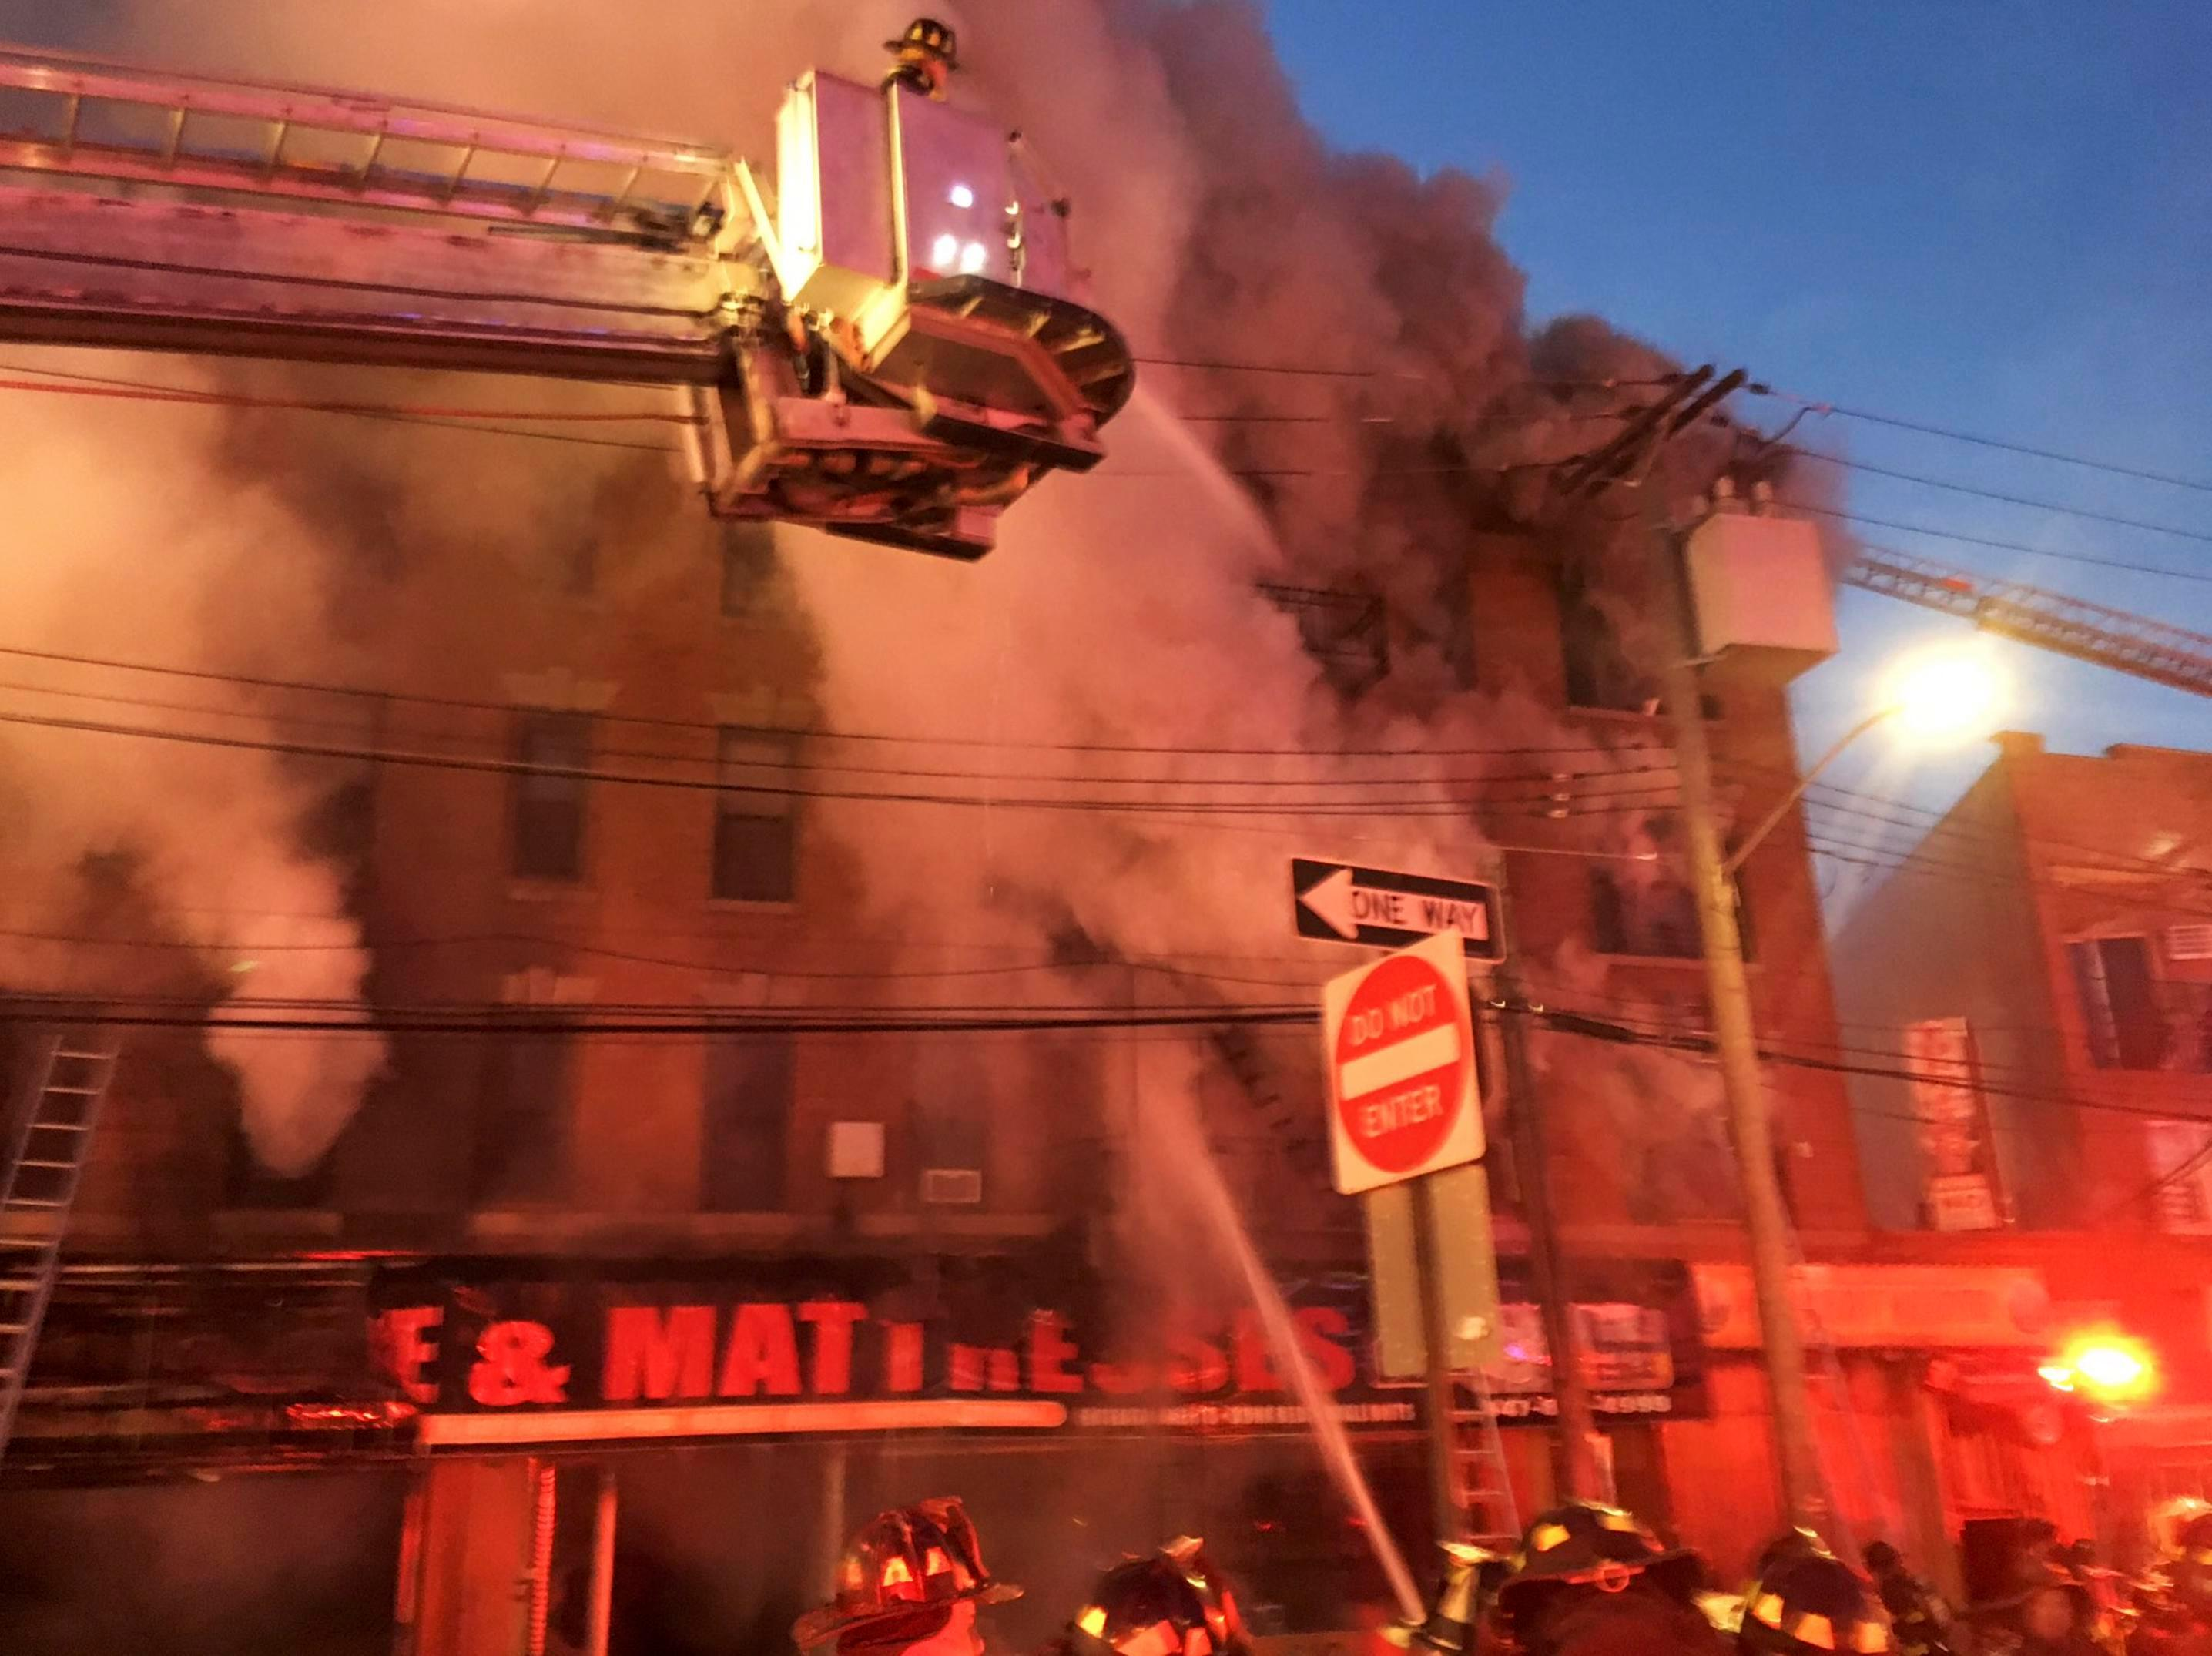 Hundreds of firefighters battle massive inferno at Bronx apartment block just days after blaze that killed 12